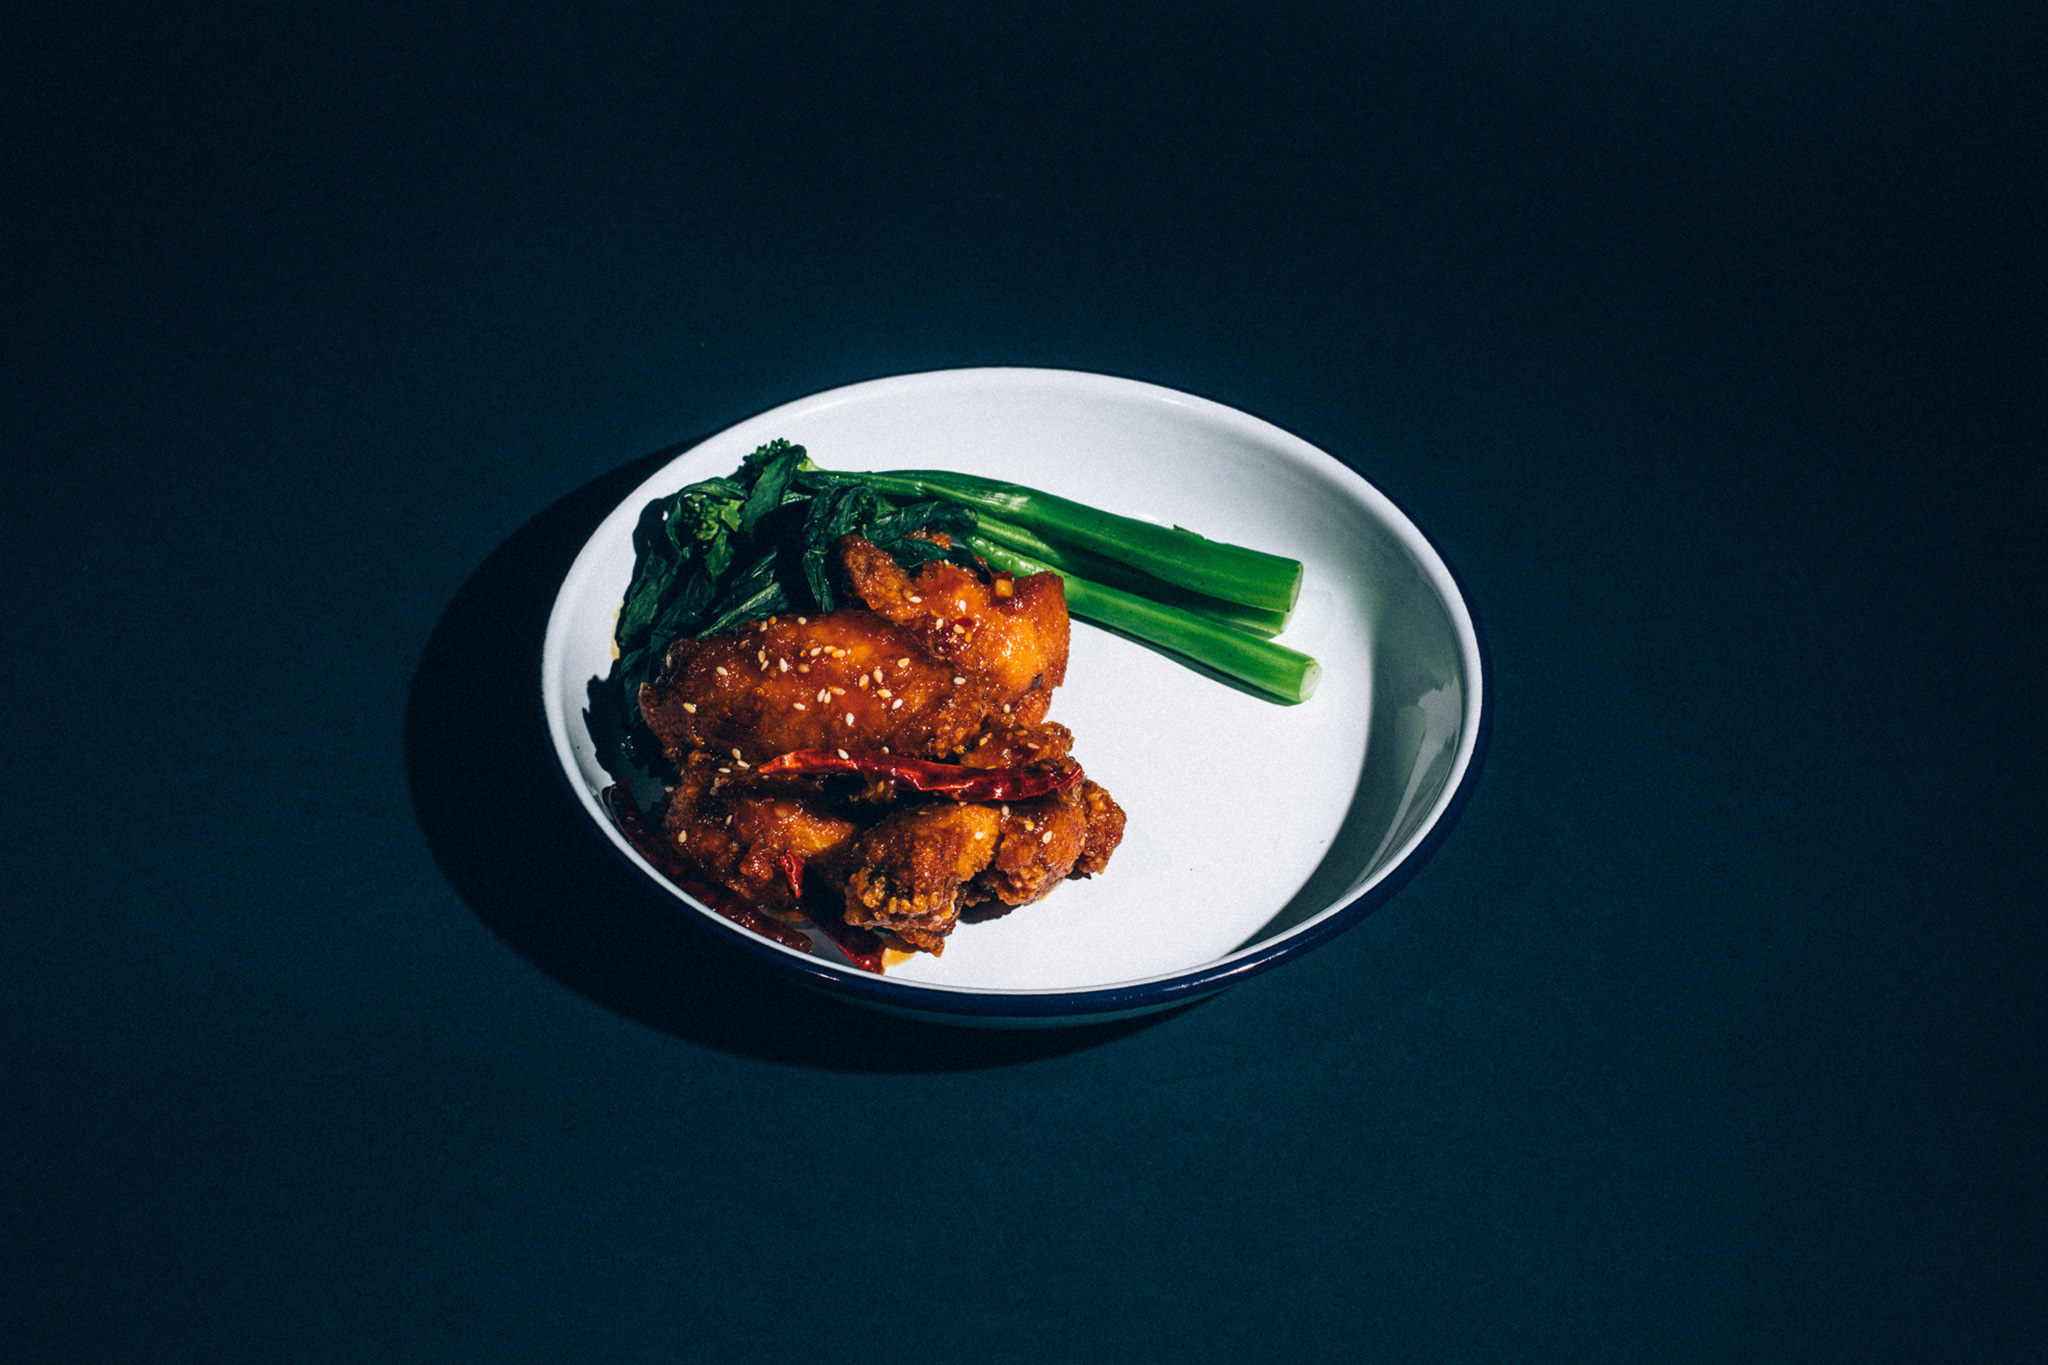 General Tso's chicken wings at Atlantic Social